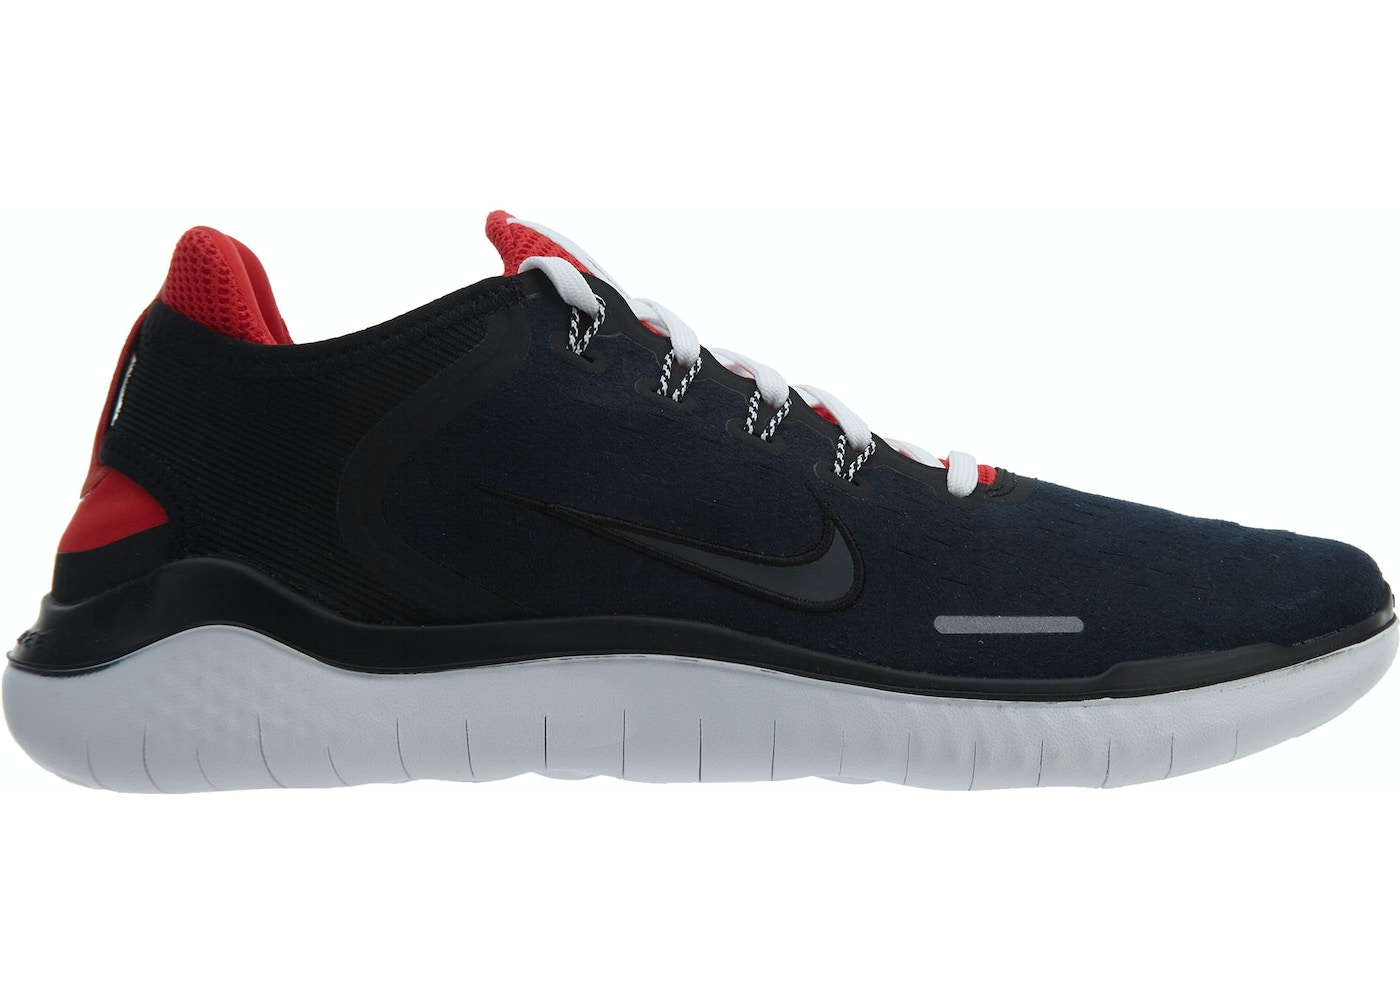 1a526cff1cb84 Sell. or Ask. Size  9.5. View All Bids. Nike Free Rn 2018 Dna Black  Anthracite-Speed Red